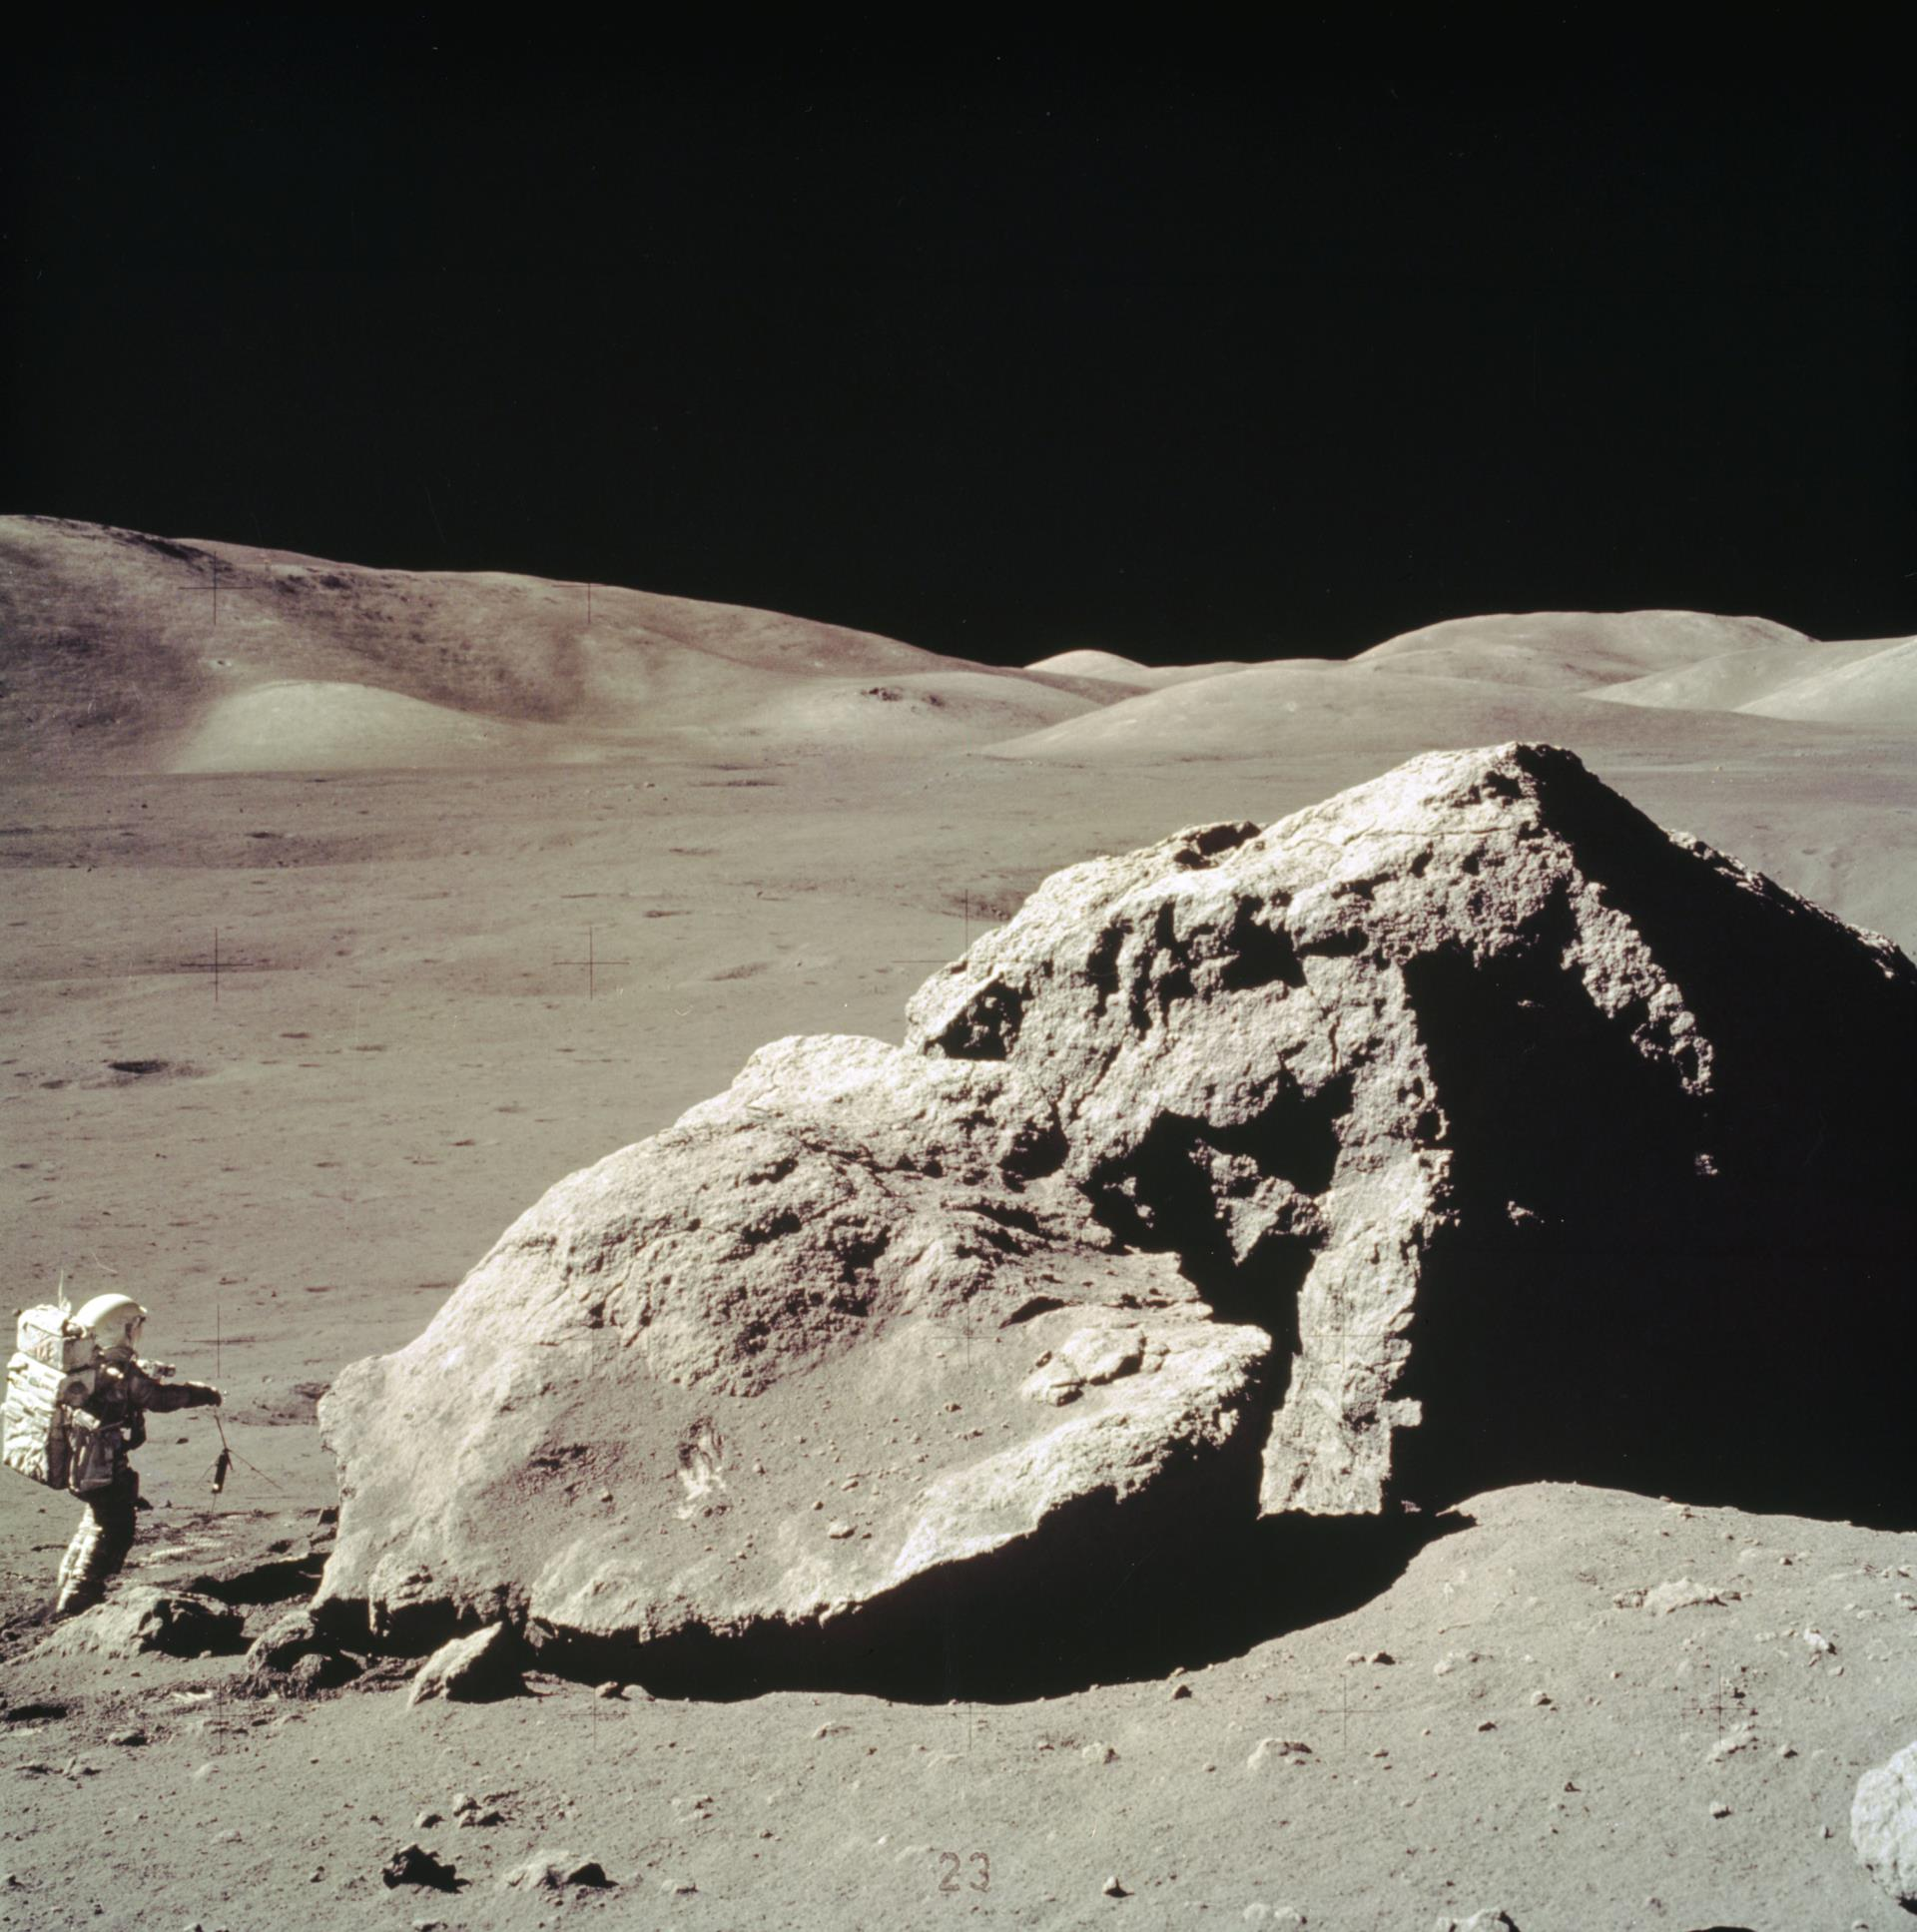 Astronaut collecting moon rocks